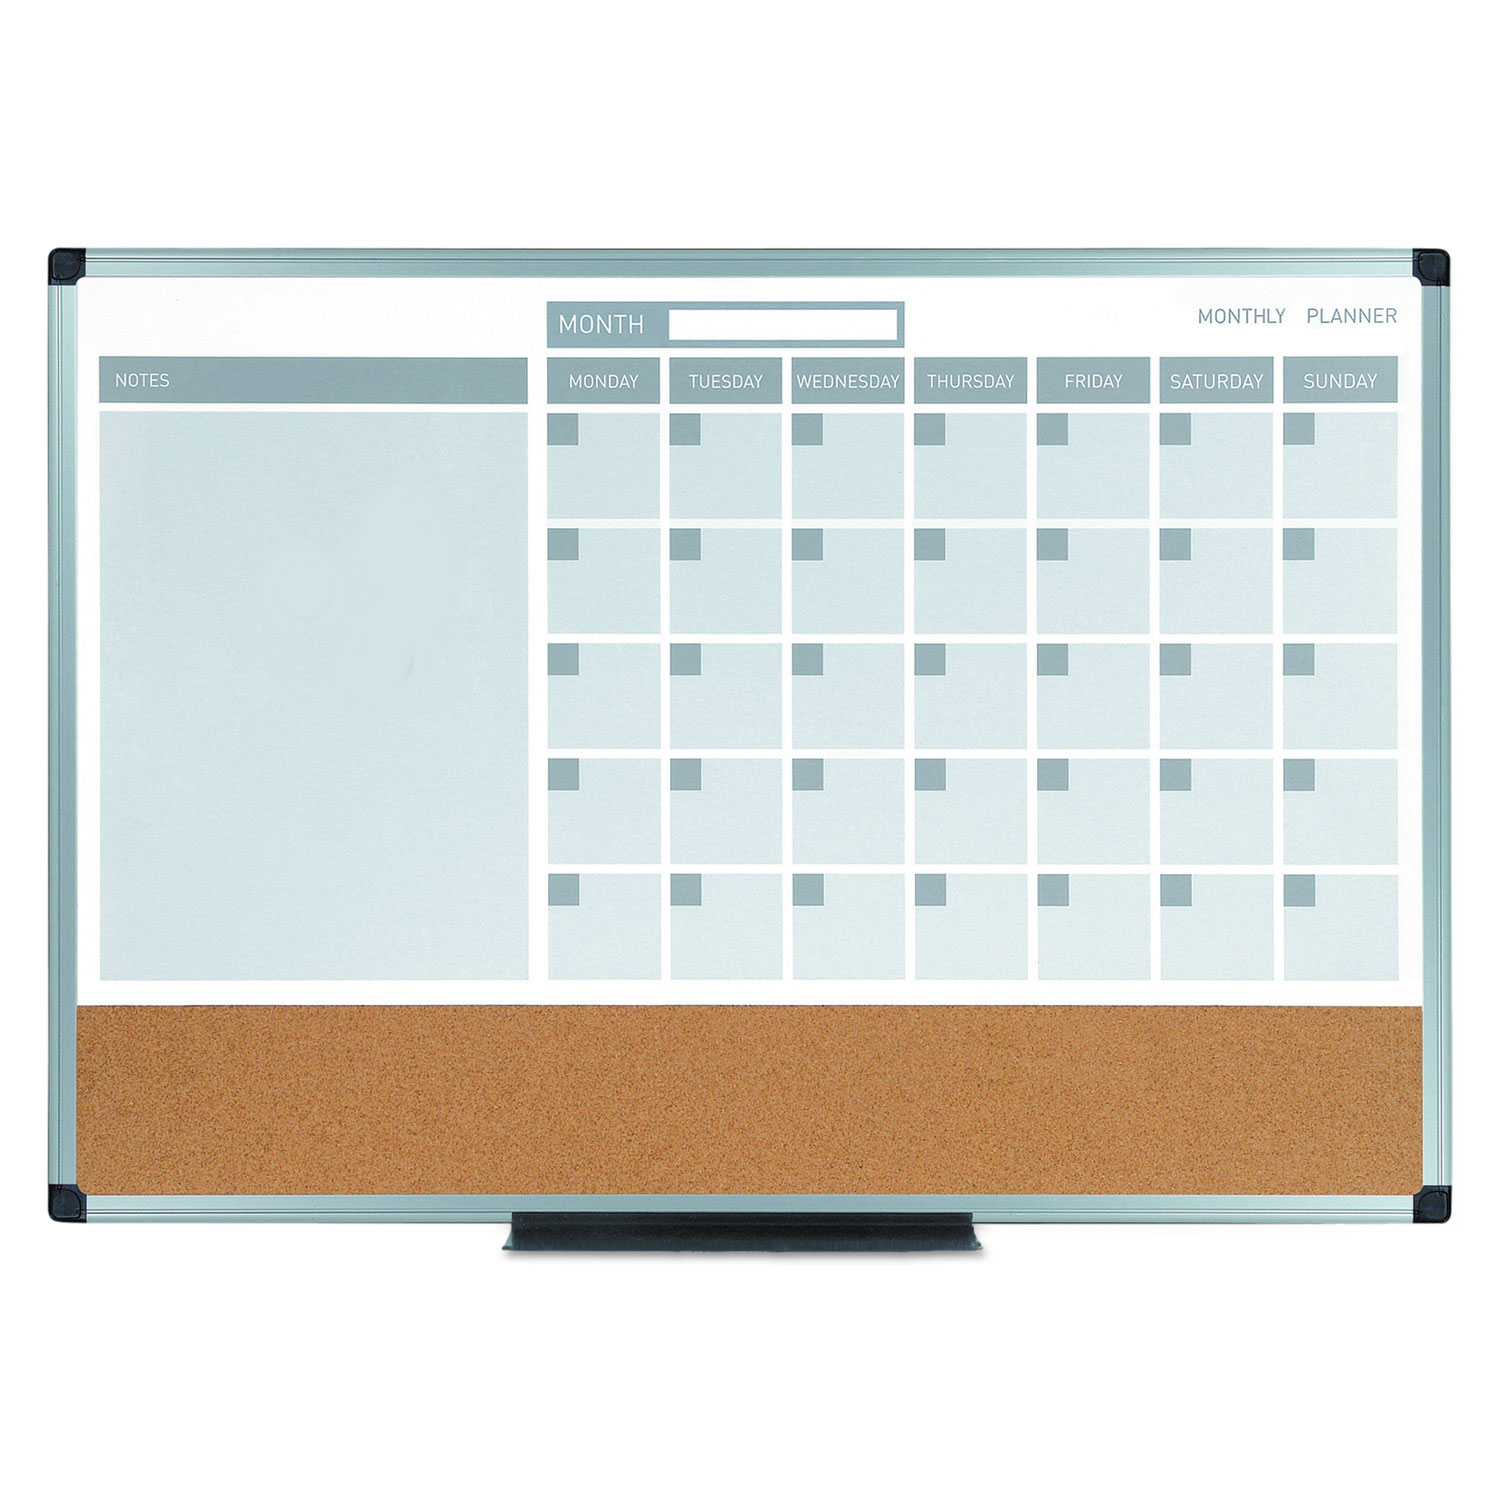 3 In 1 Calendar Planner Dry Erase Board By Mastervision